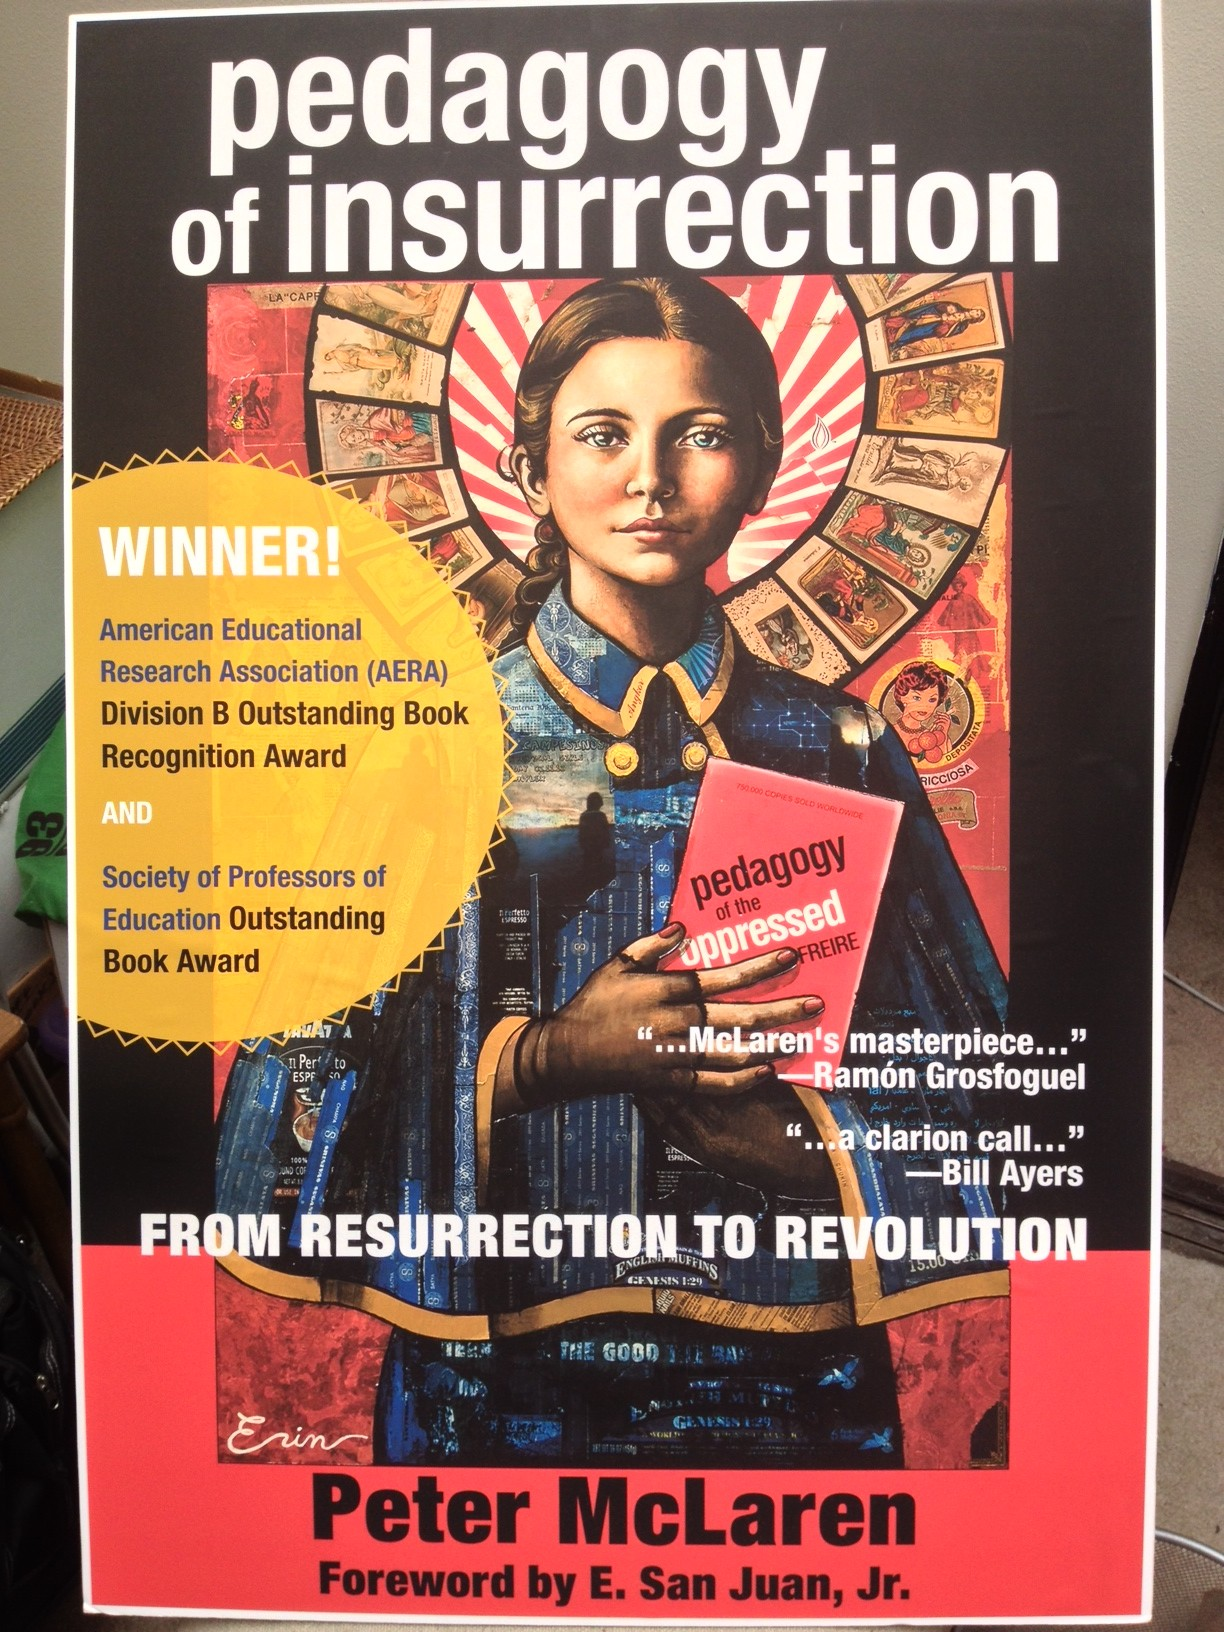 Pedagogy of Insurrection: AERA: Division B Outstanding Book Recognition Award & Society of Professors of Education Outstanding Book Reward